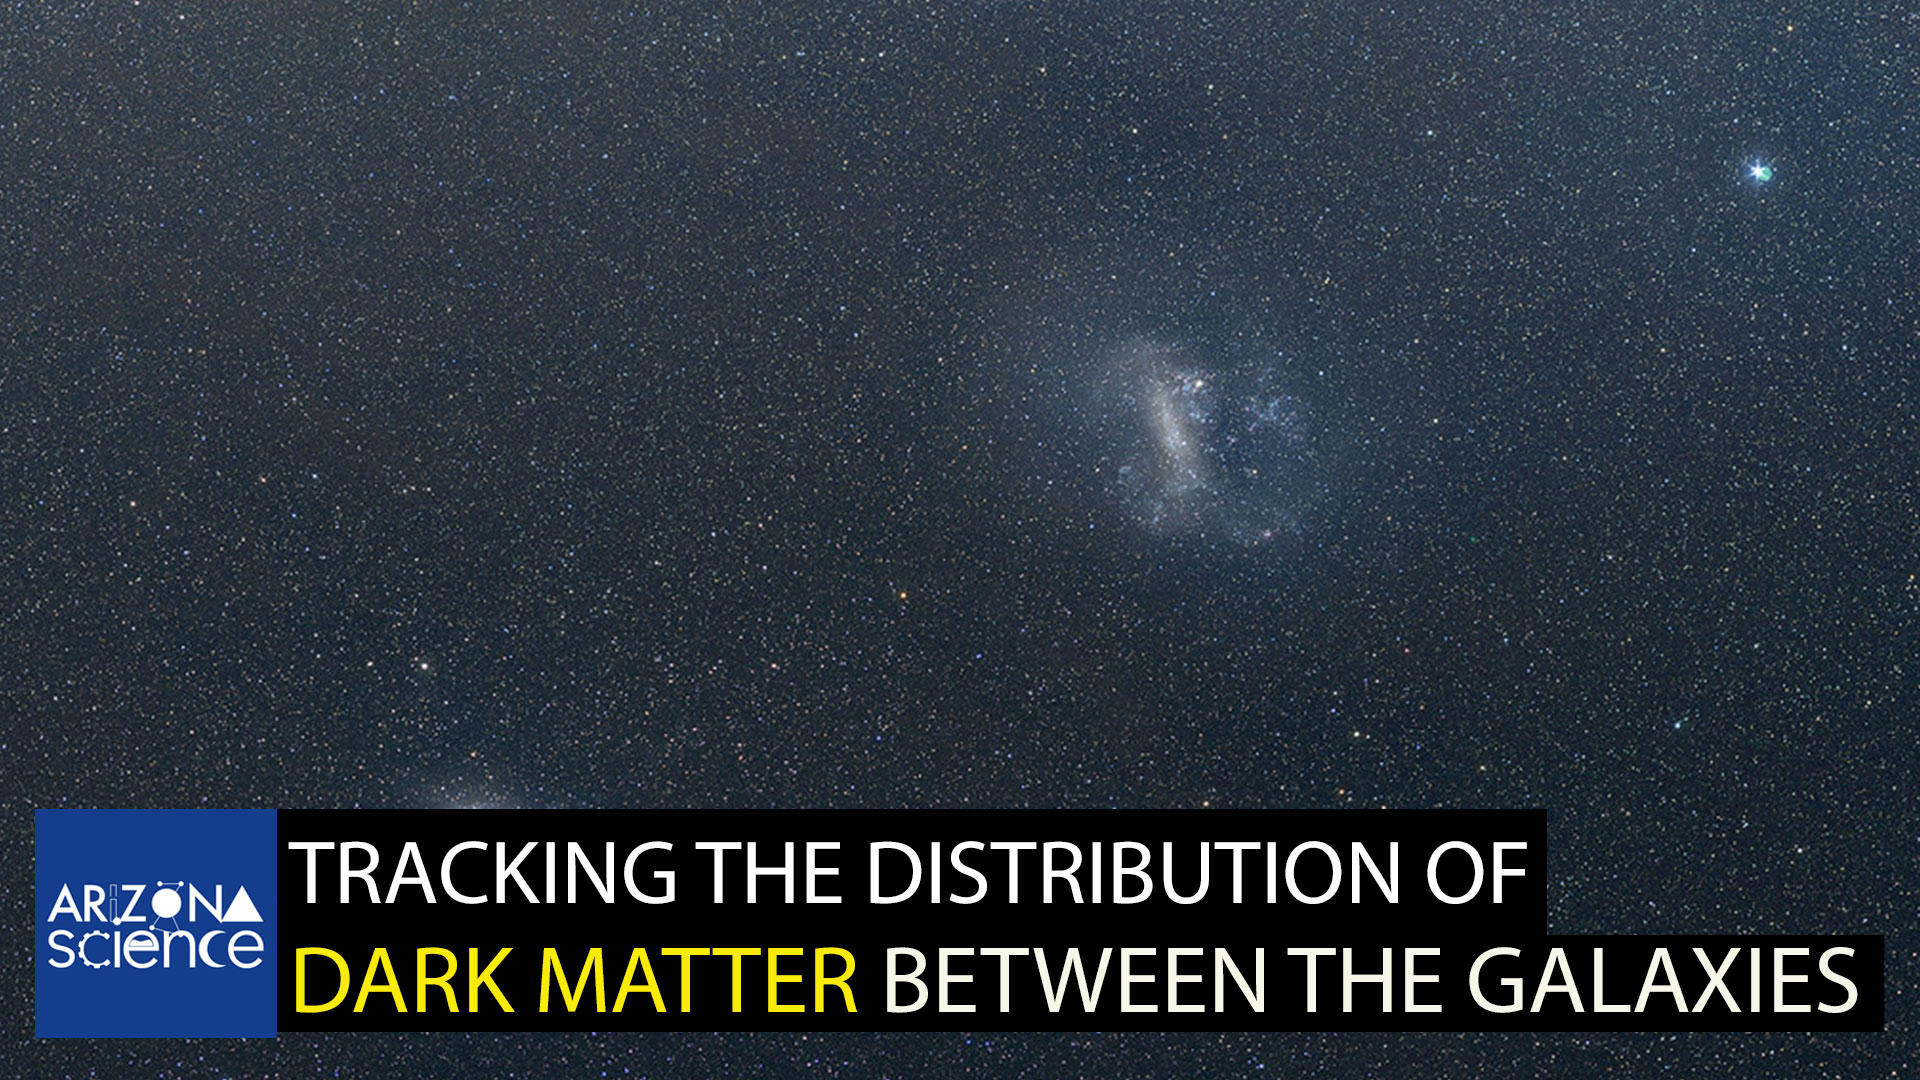 UA researchers searched for dark matter in the Large Magellanic Cloud (right) a satellite galaxy of the Milky Way.